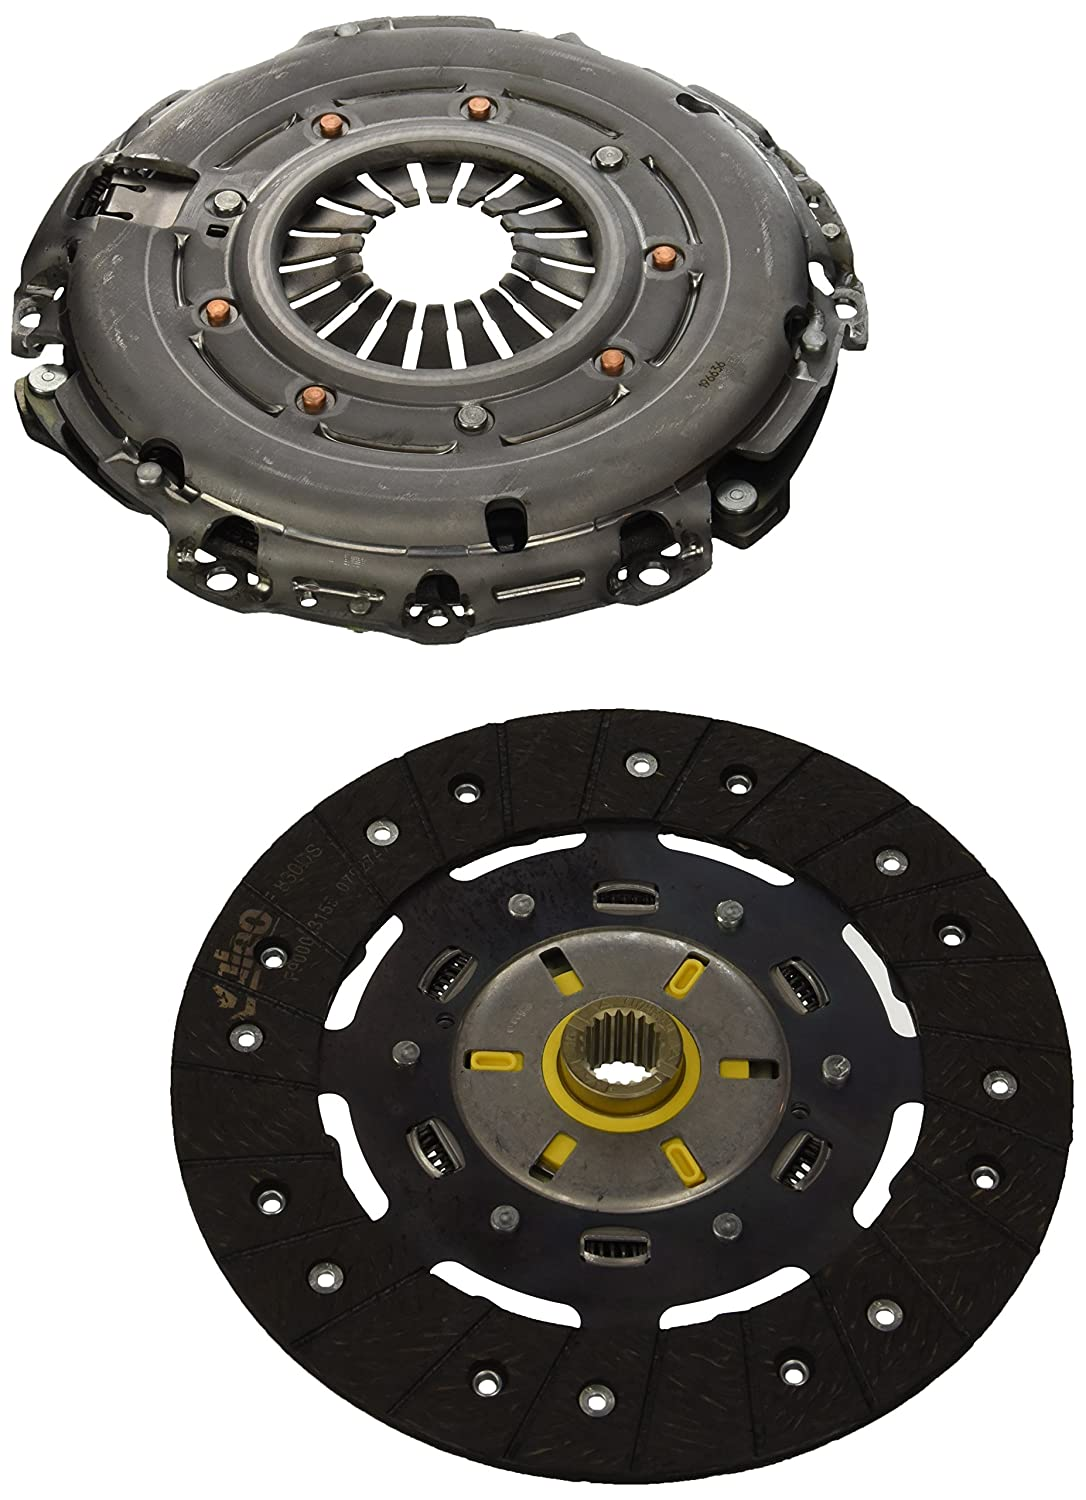 Amazon.com: VALEO Clutch Kit Fits ALFA ROMEO FIAT Doblo LANCIA 1.6-2.0L 2006-: Automotive